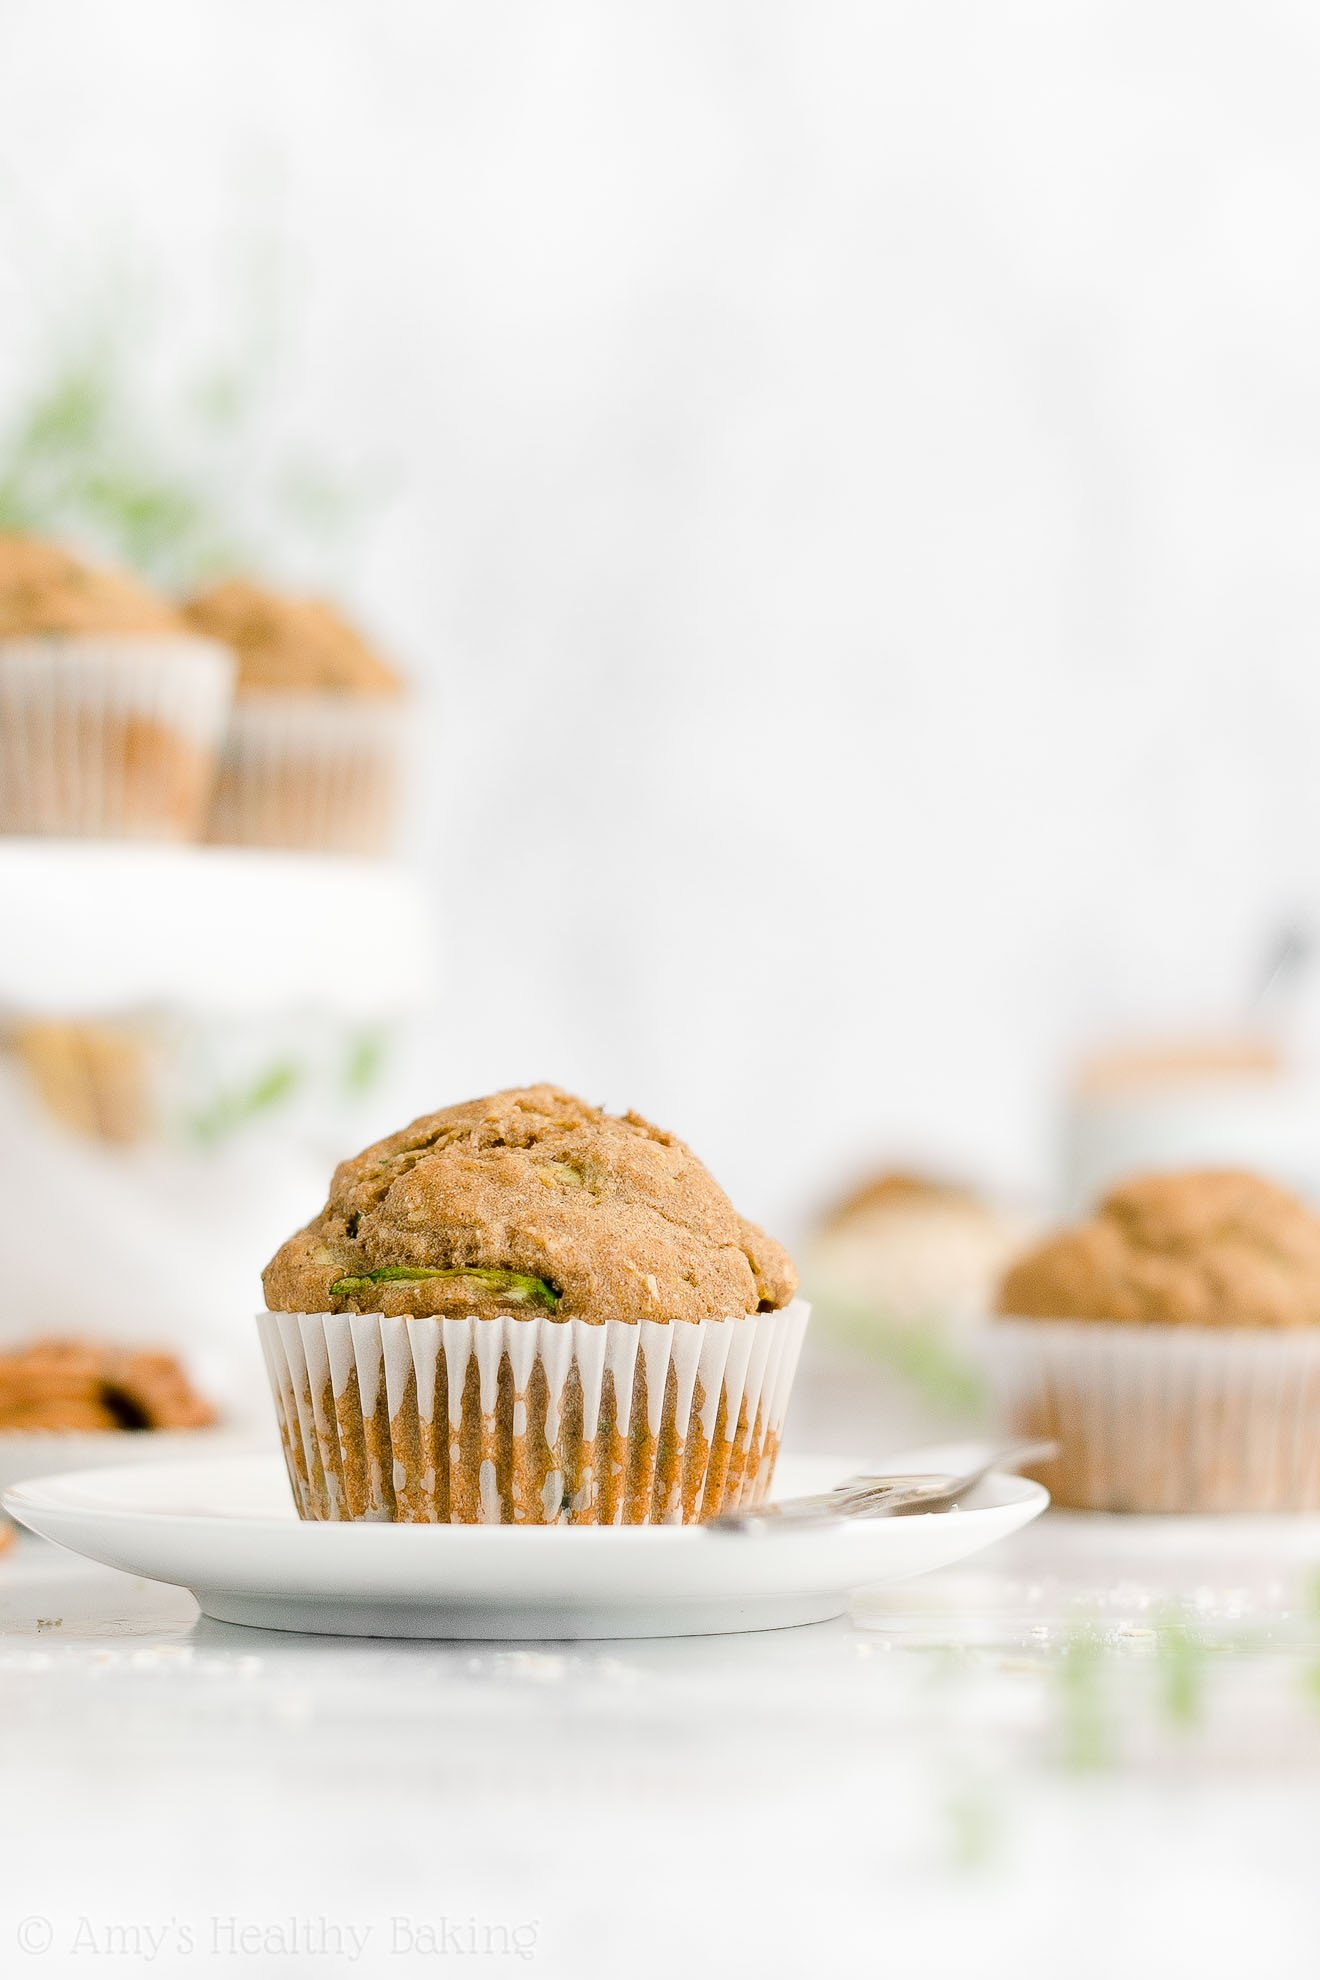 Best Easy Healthy Low Calorie Gluten Free Moist Zucchini Oatmeal Muffins